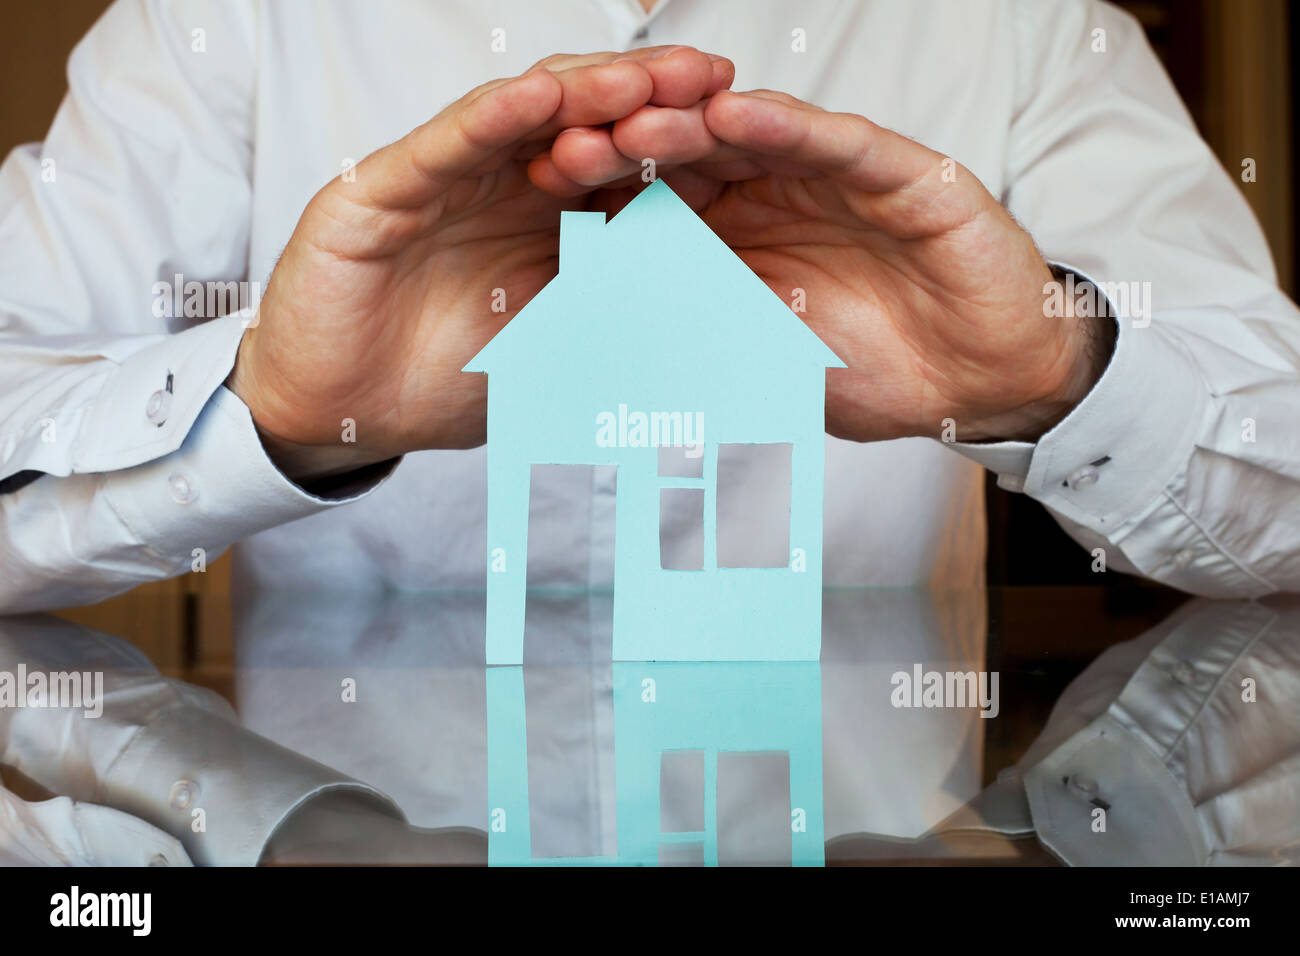 Concept d'assurance immobilier Photo Stock